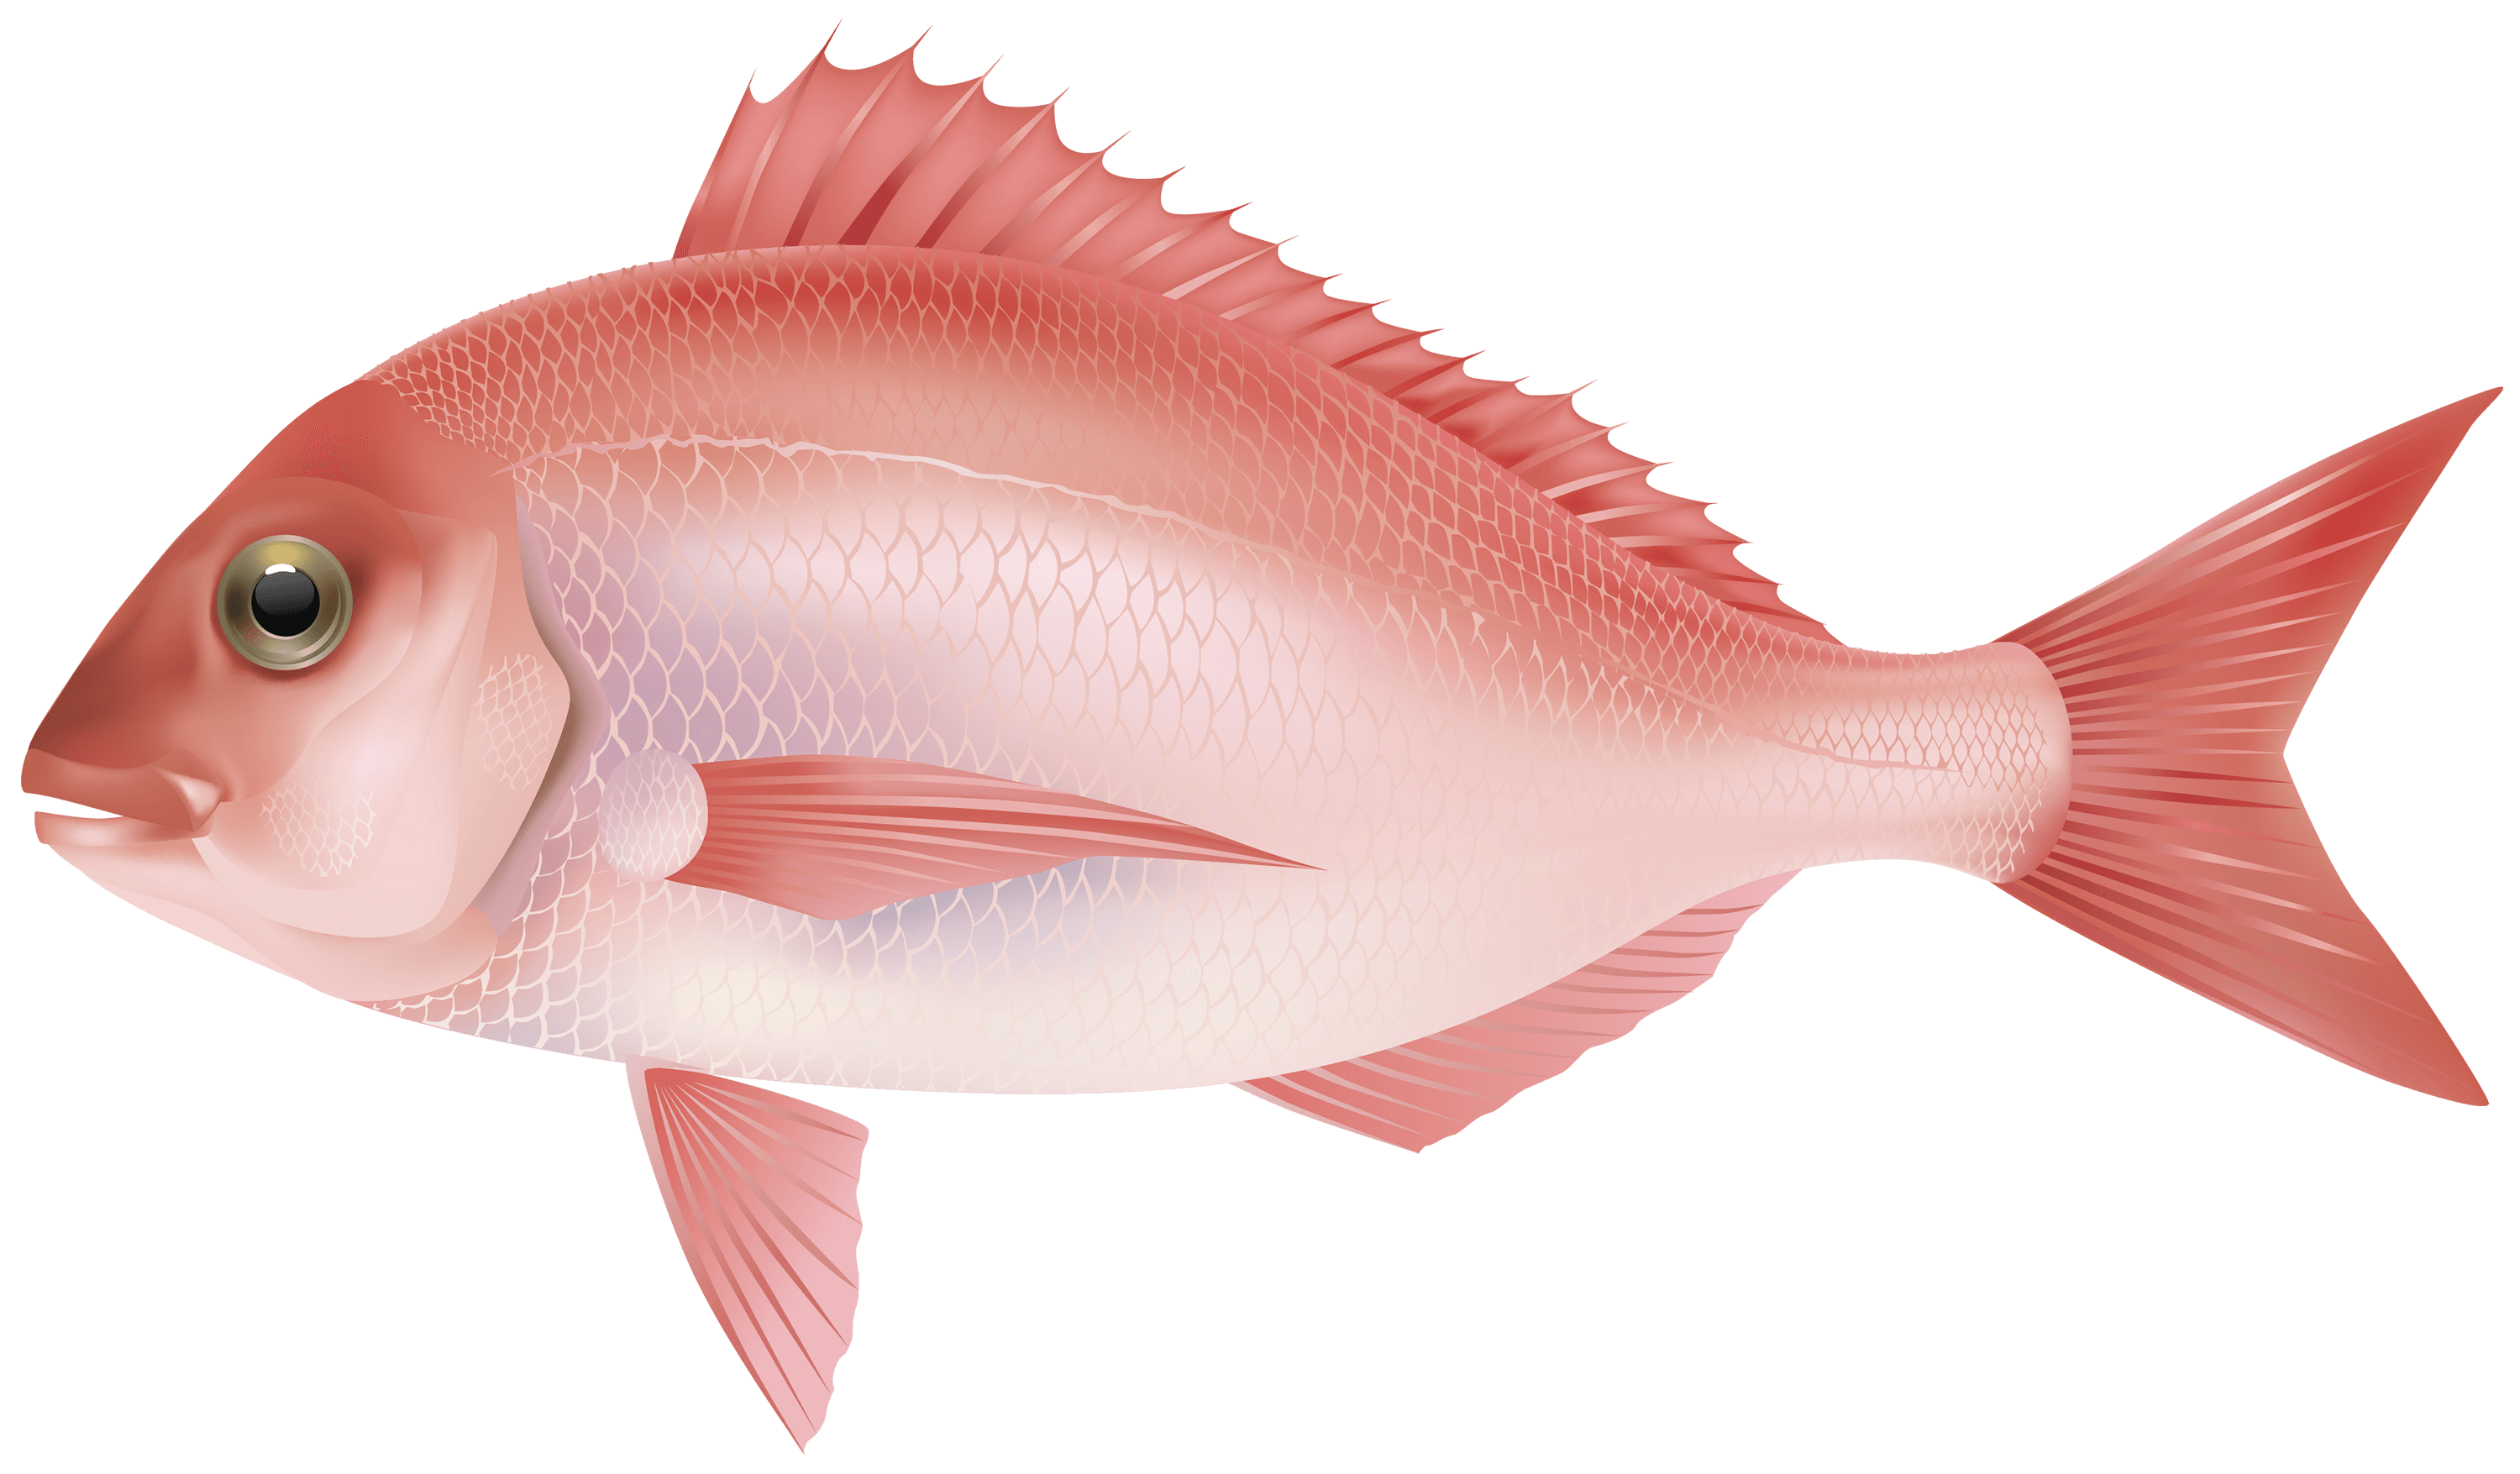 Clipart fish side view. Rose transparent png stickpng